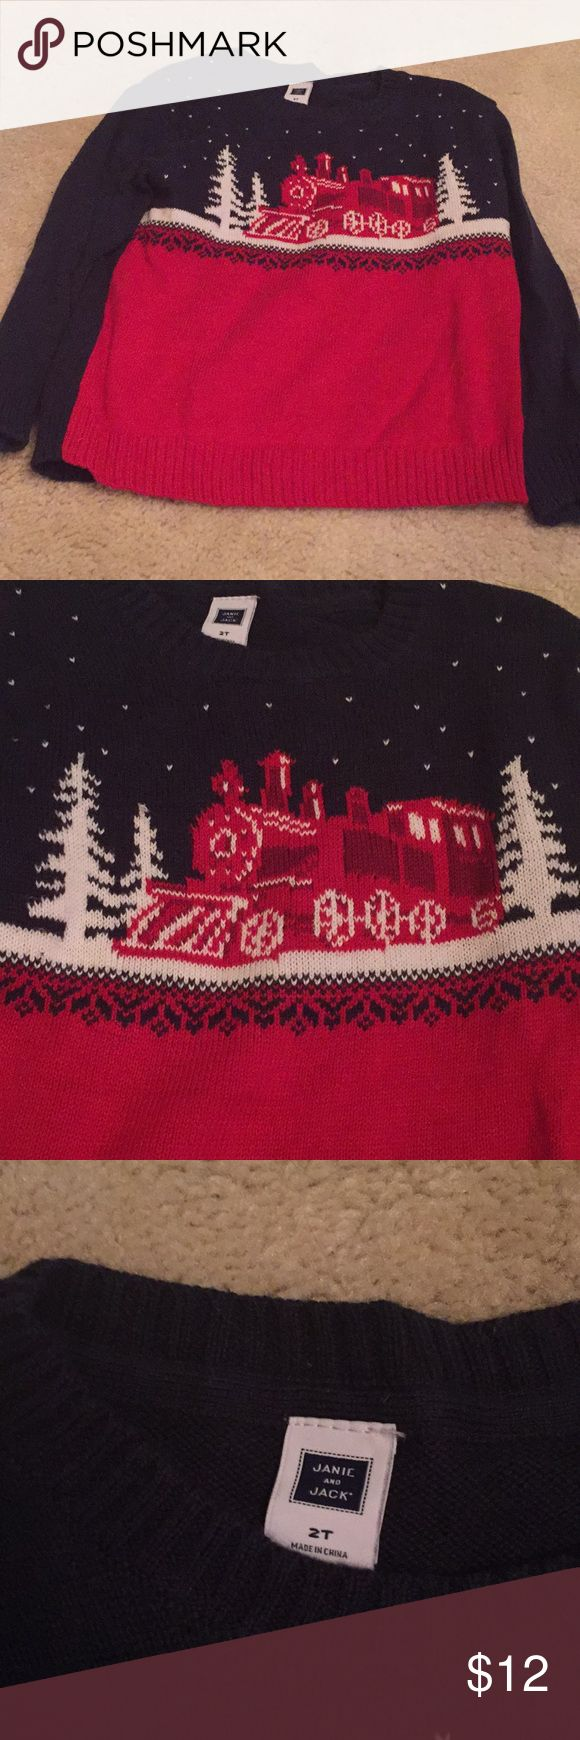 Janie and Jack Winter Train Sweater Sz 2T Janie and Jack Winter Train Sweater Sz 2T runs big- fit my son best at 3T Janie and Jack Shirts & Tops Sweaters